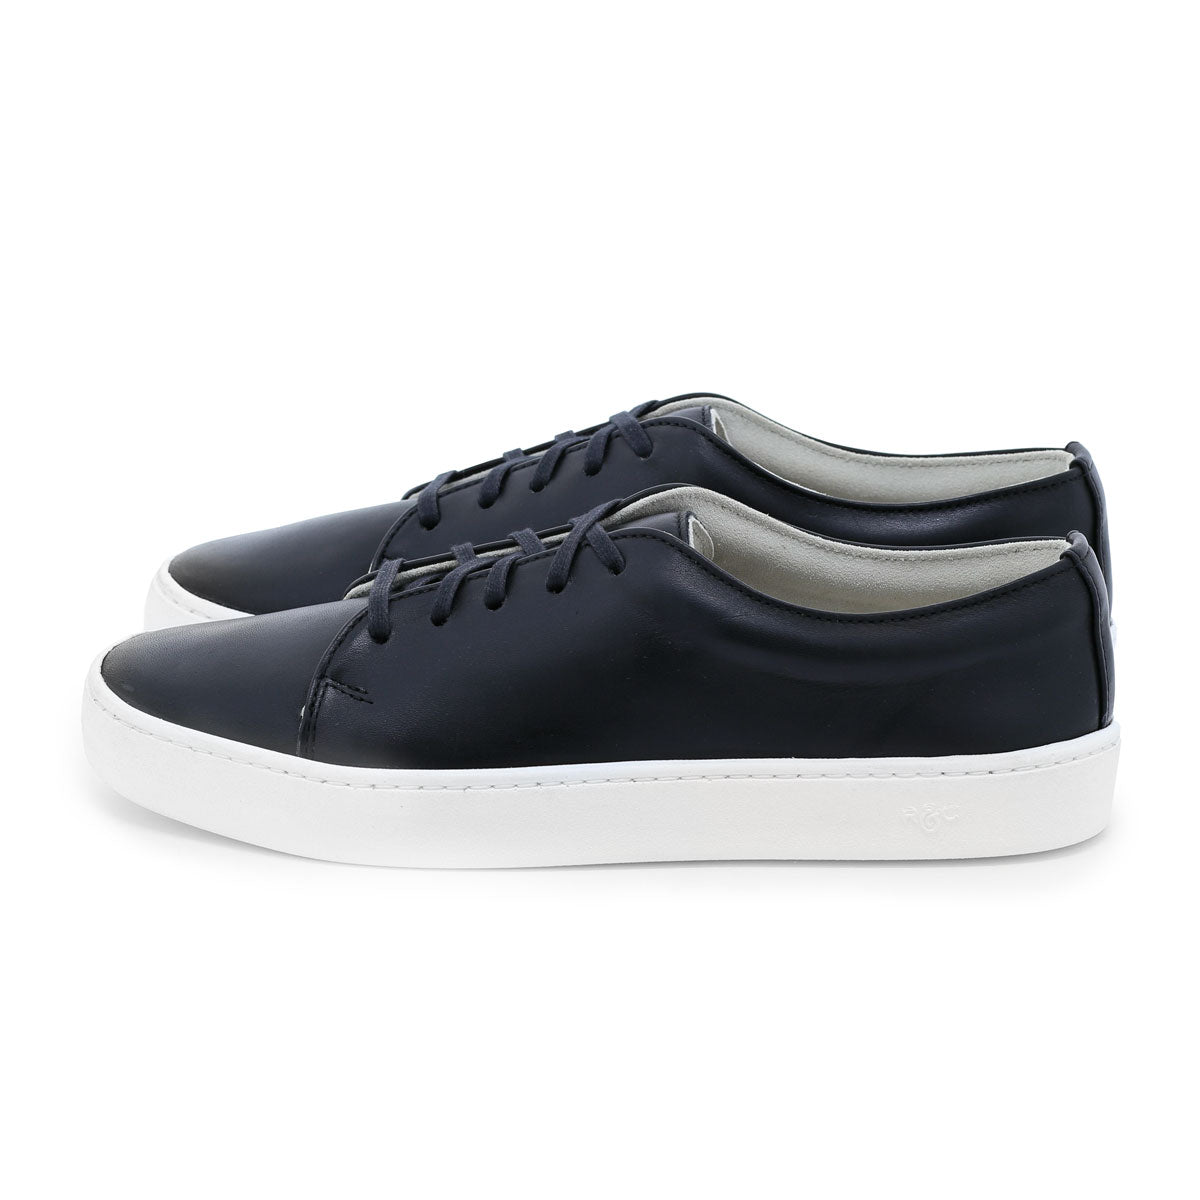 Court Classic 2.0 Low - Black Weston